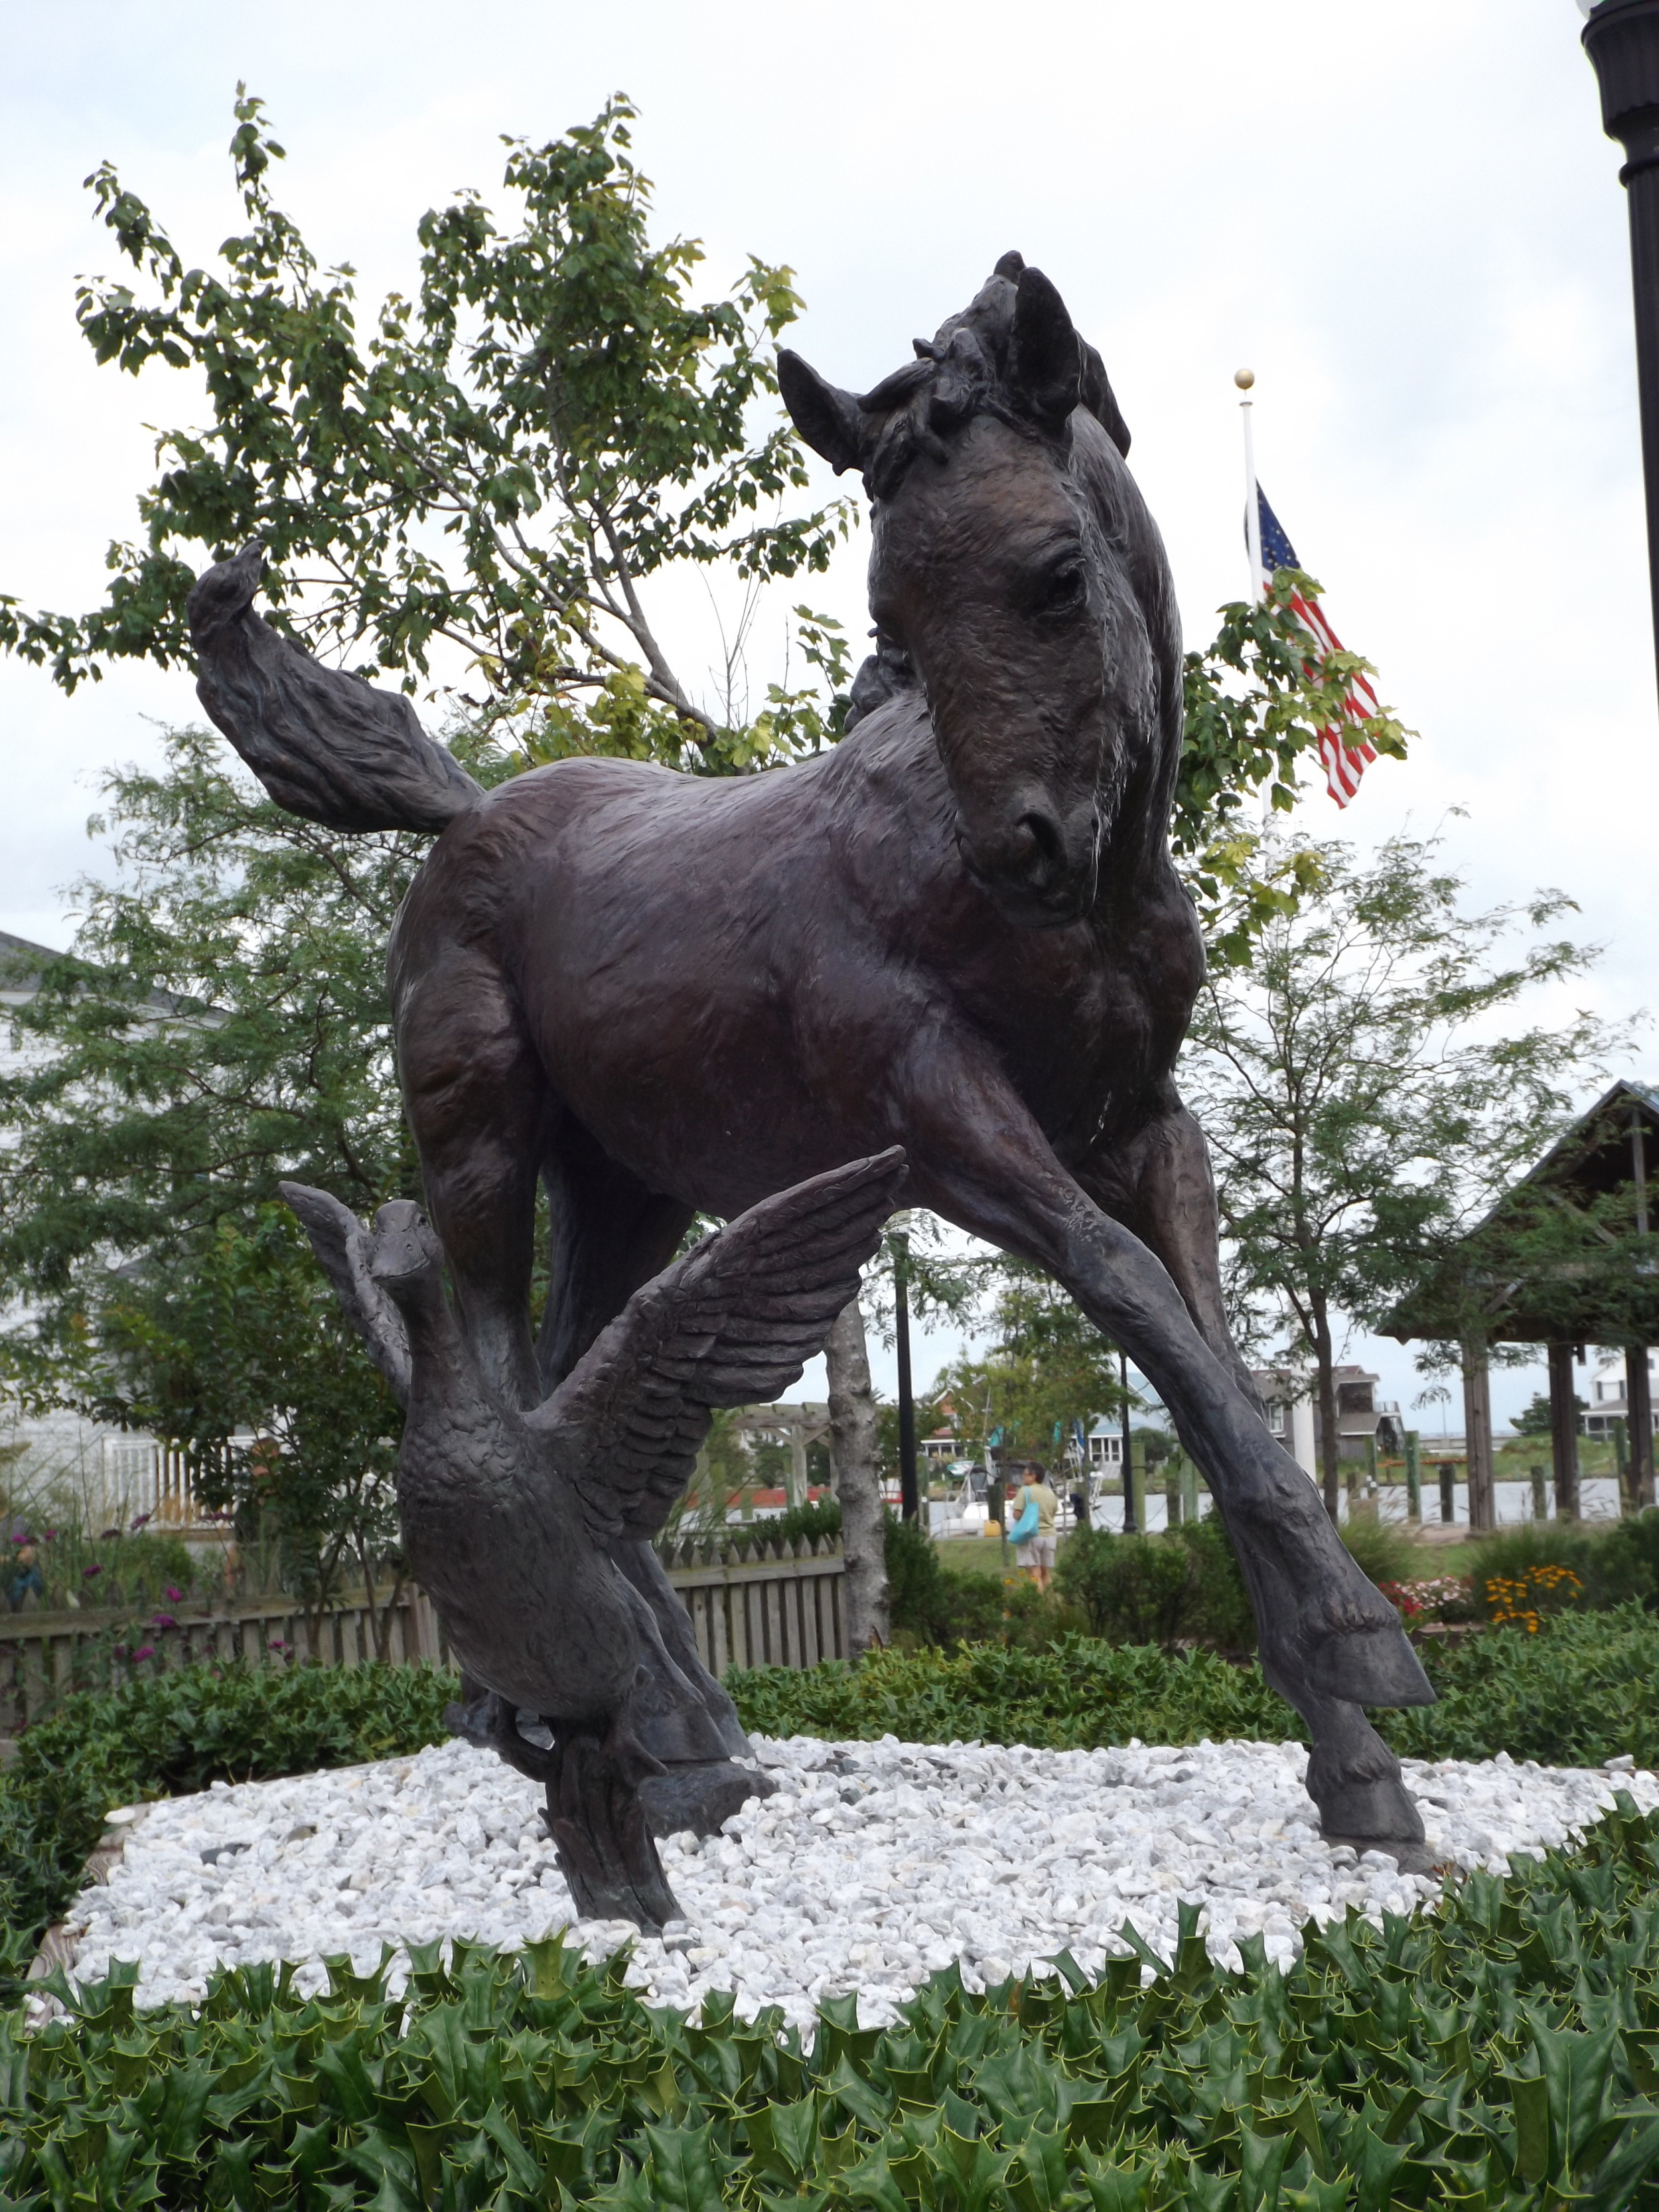 Chincoteague and Assateague arefamous for the wild ponies, particularly Misty from the popular children's book, but the islands also have a hidden Civil War history.